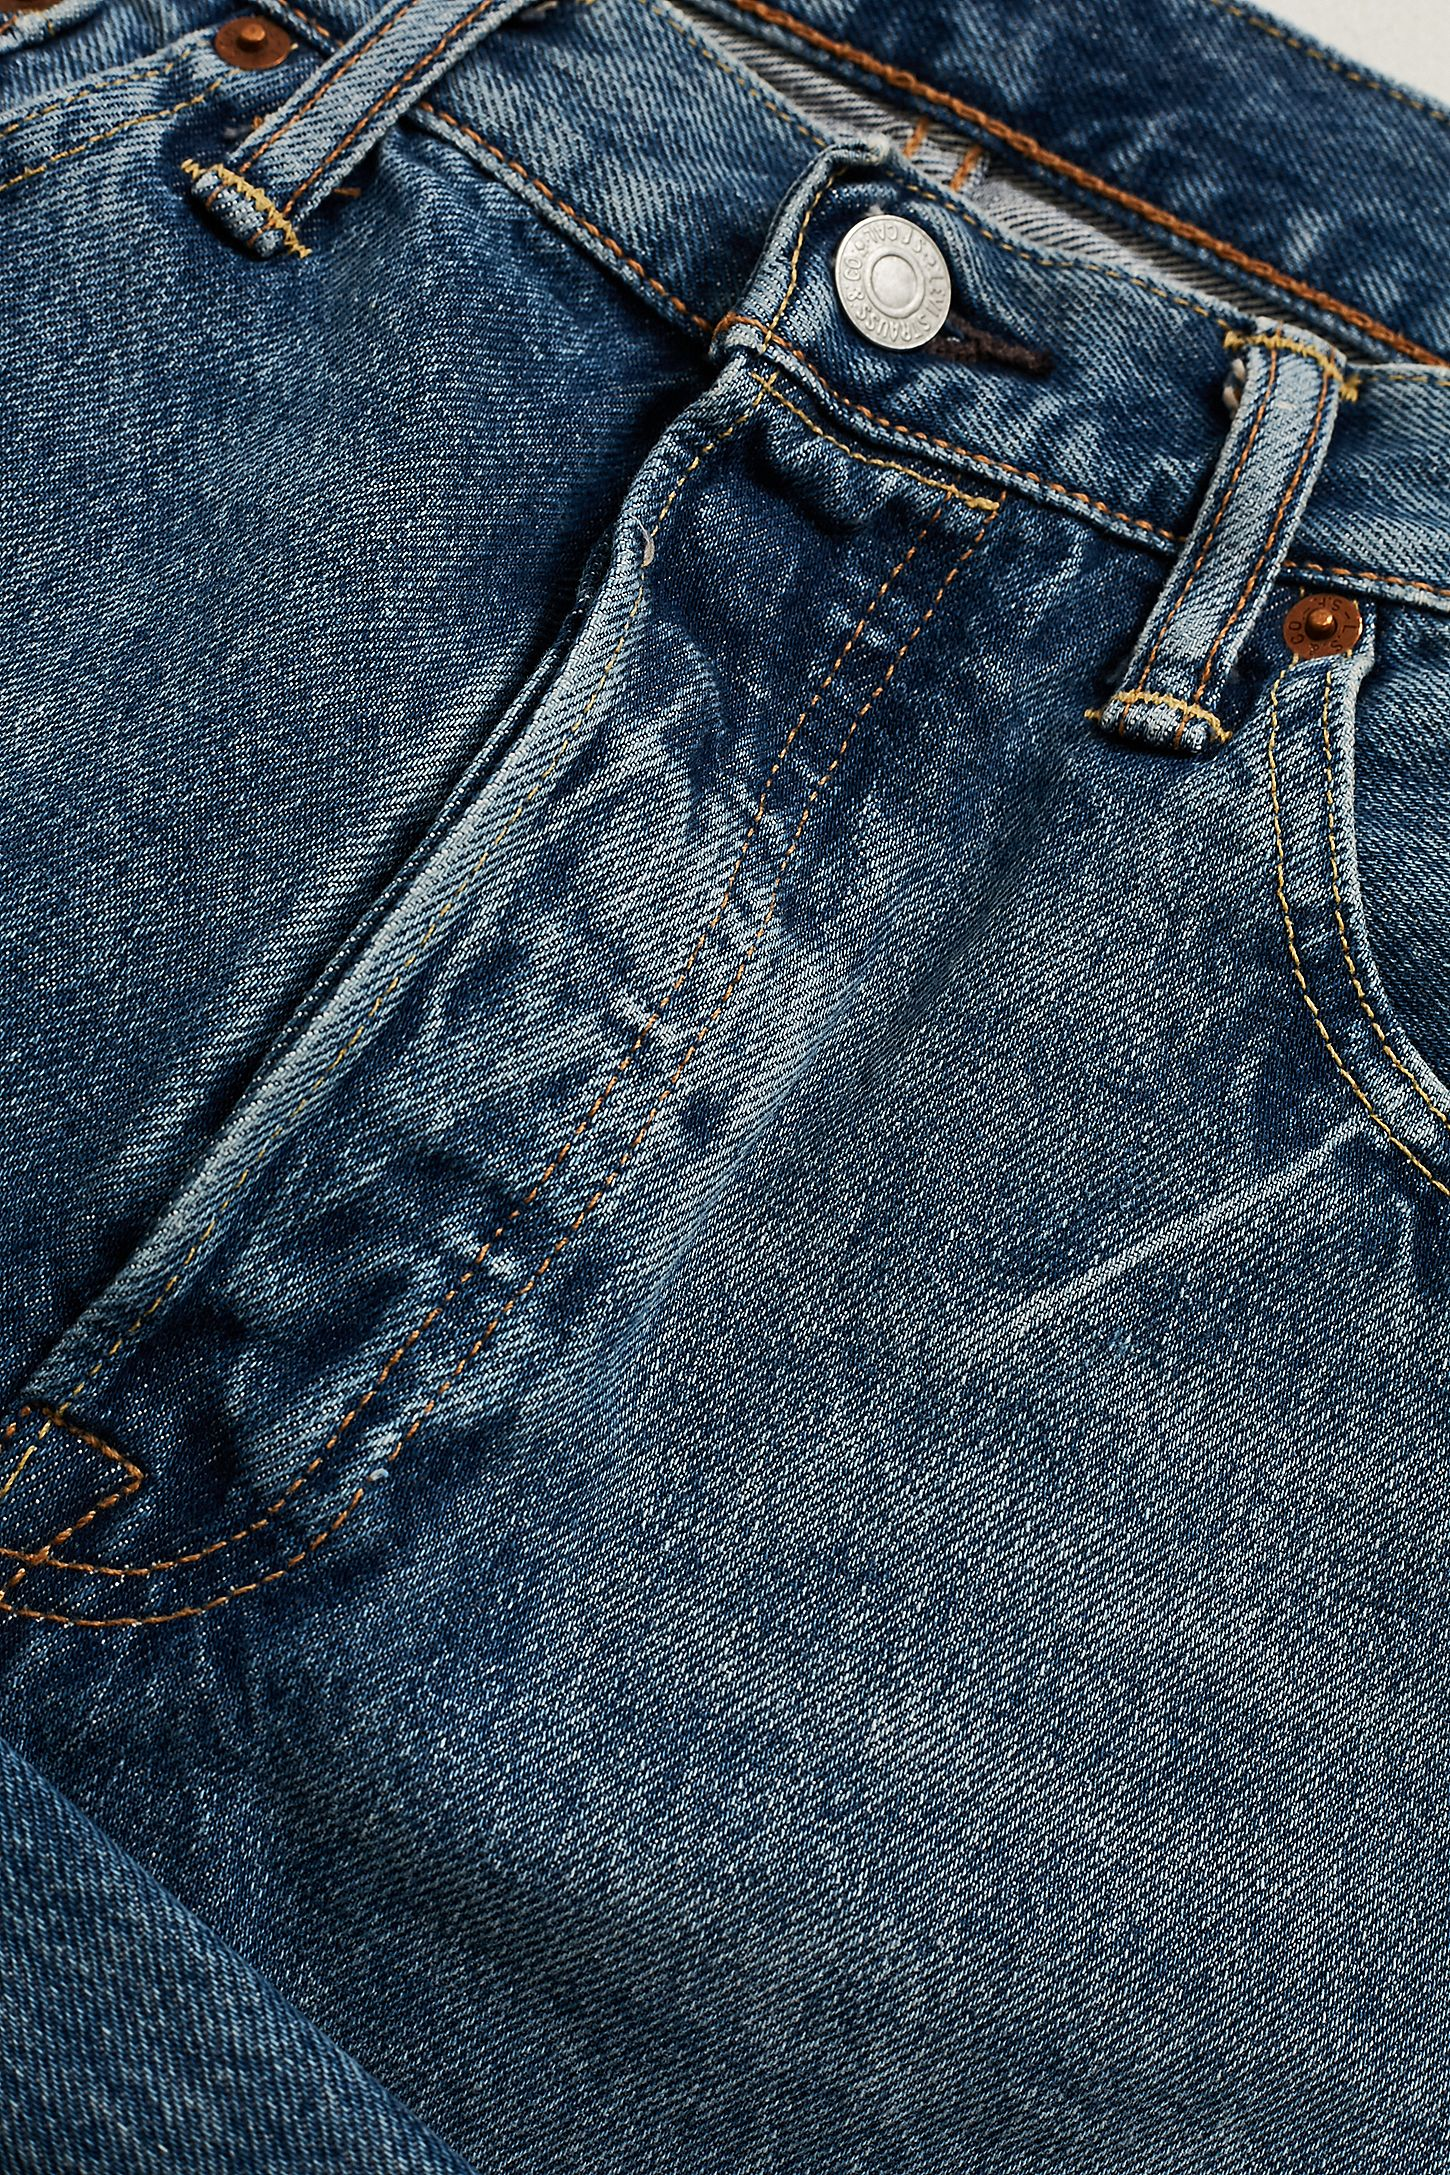 Levis 501 Original Fit Subway Station Jeans Urban Outfitters